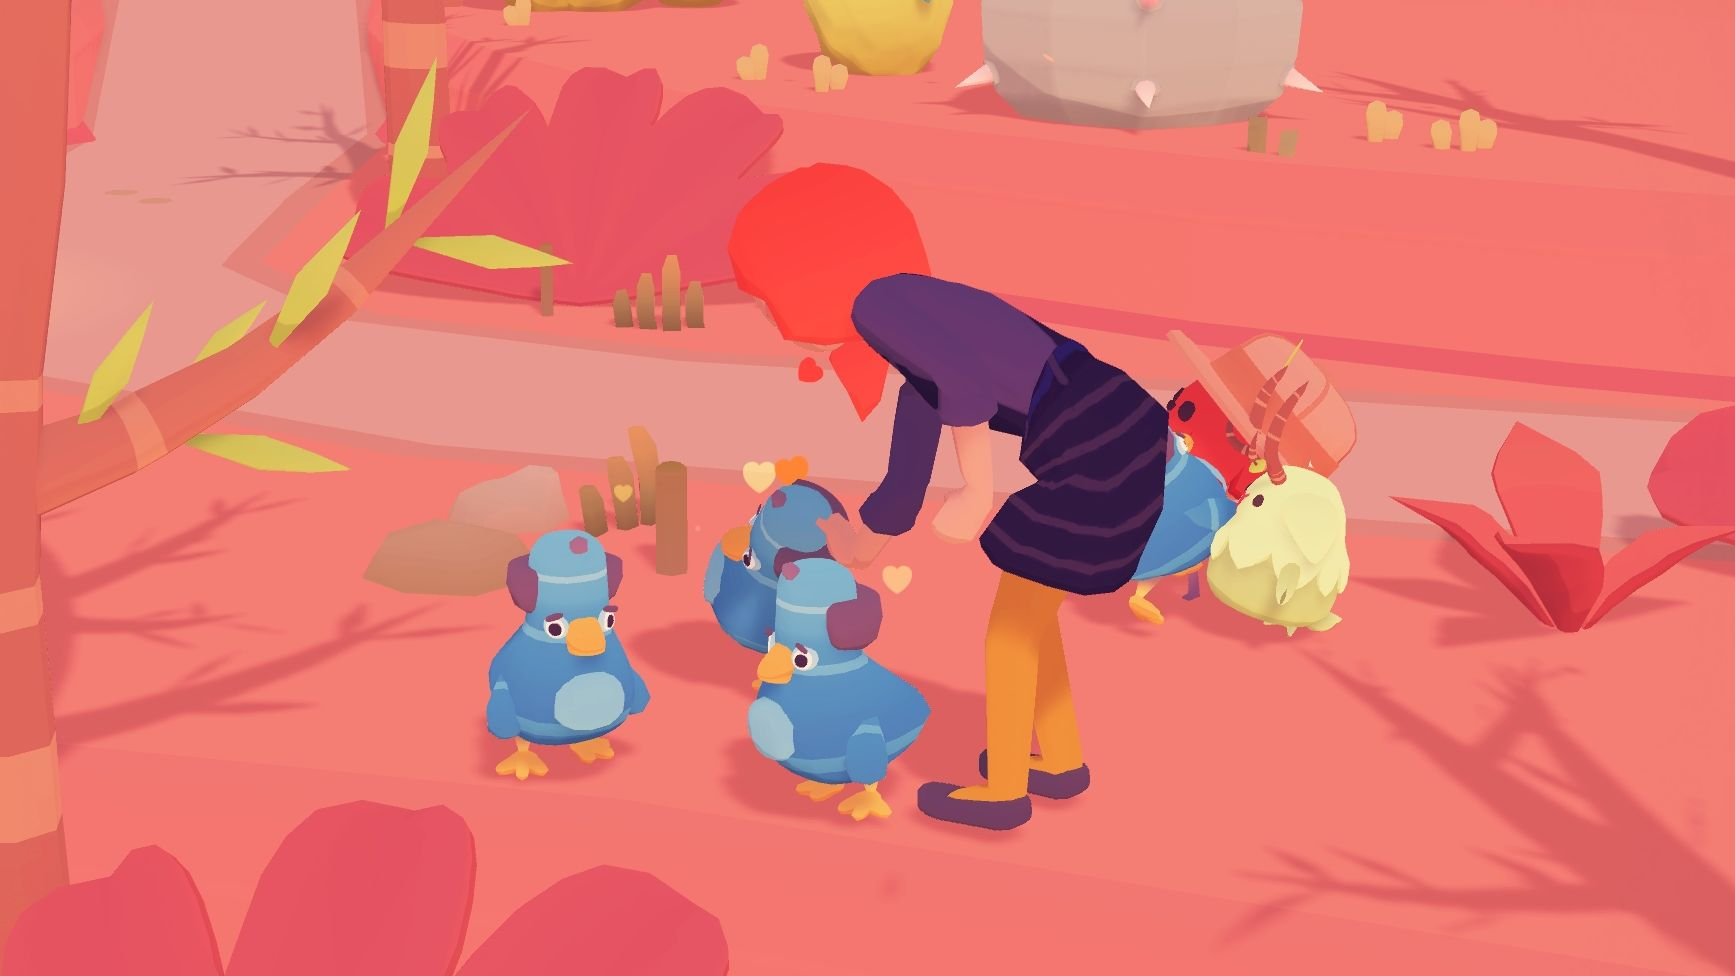 A screenshot showing the player petting a wild ooblet that looks like a balding pigeon